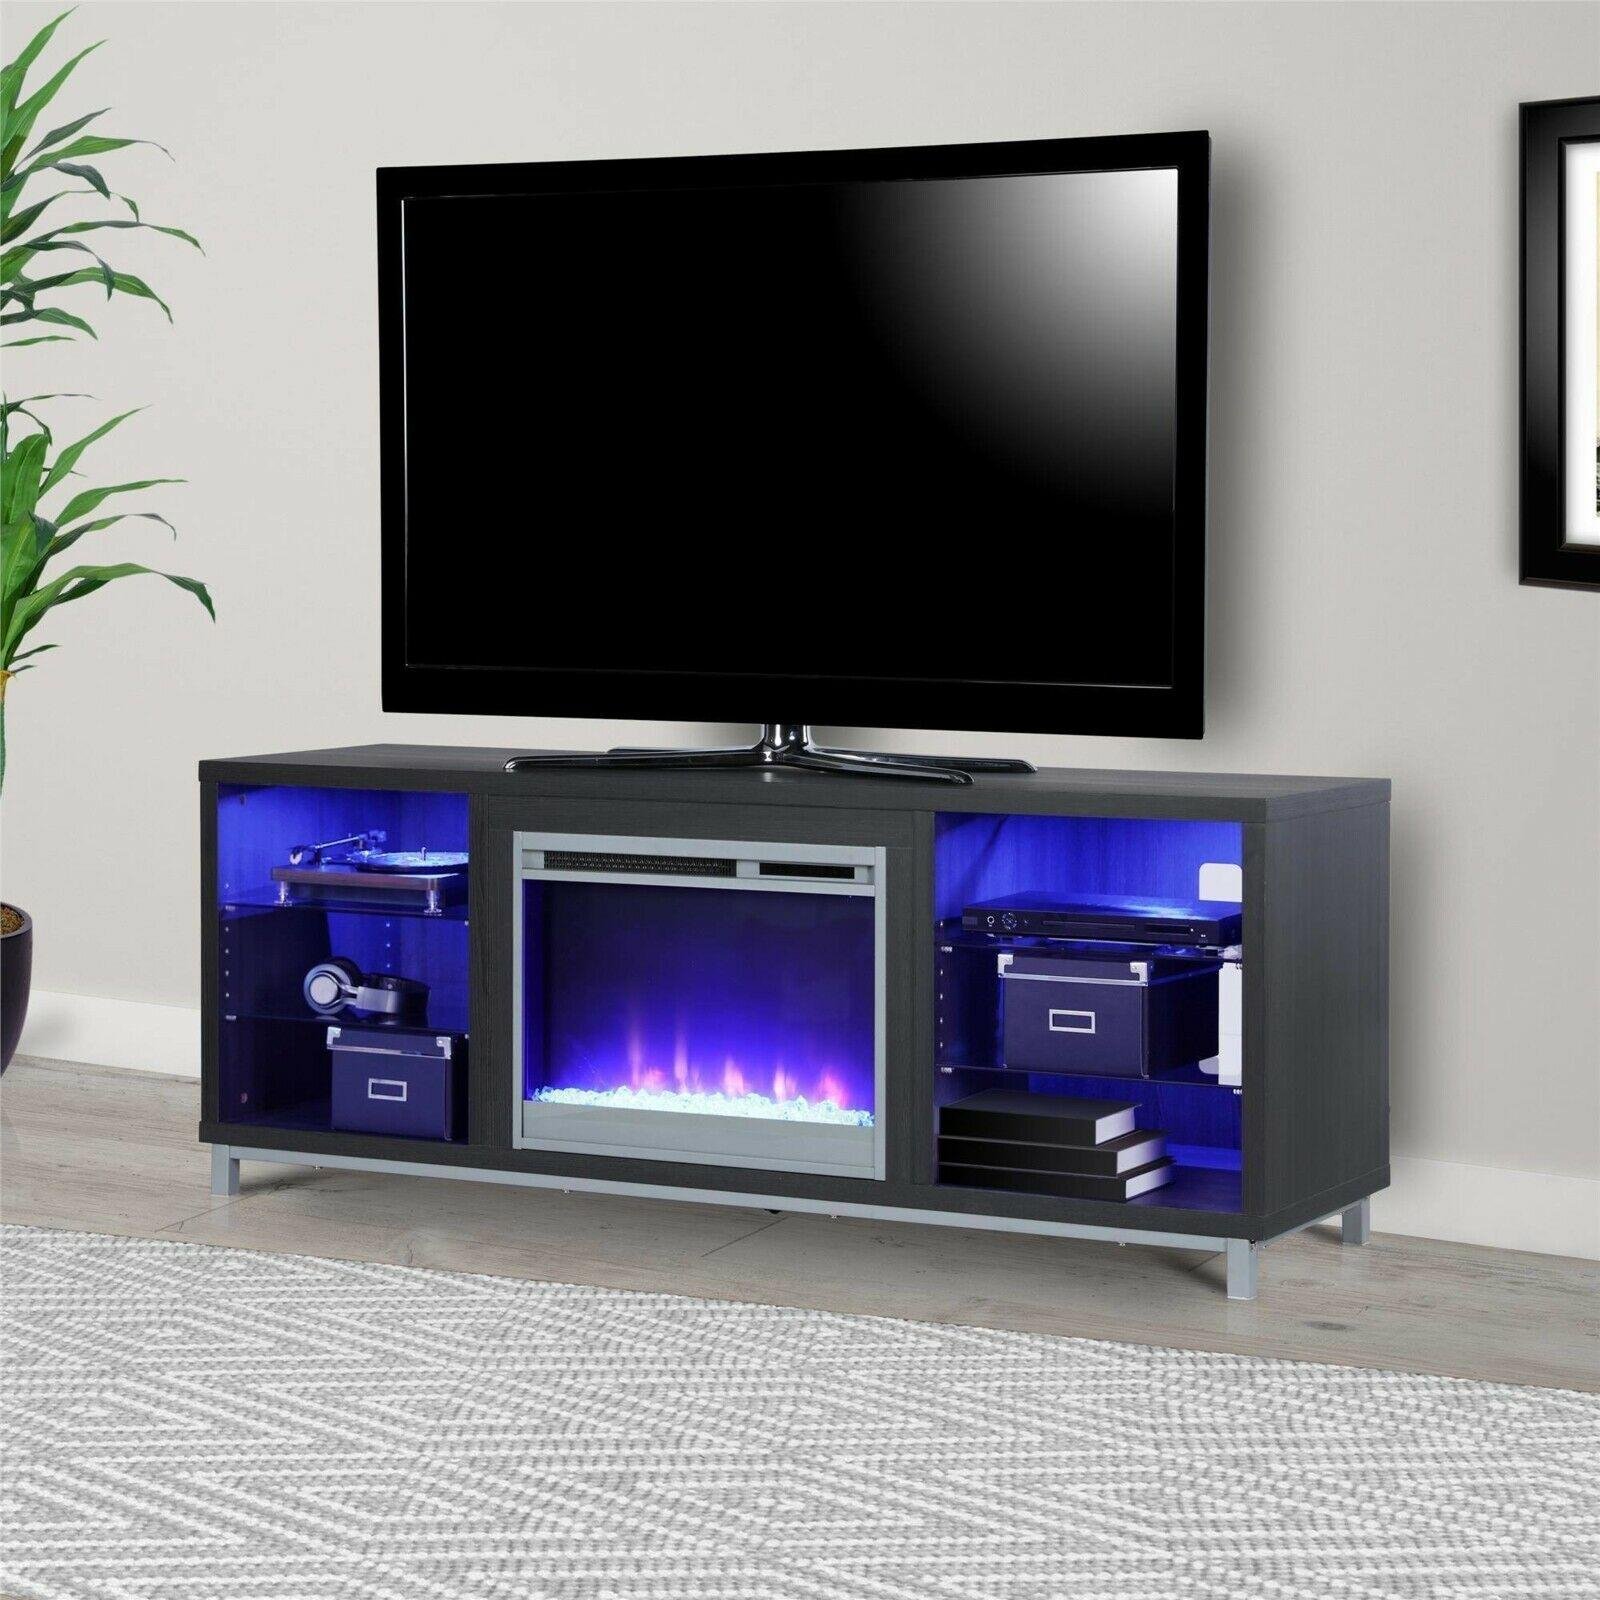 """Ameriwood Home Rhea Tv Stands For Tvs Up To 70"""" In Black Oak Intended For Fashionable Ameriwood Home Lumina Fireplace Tv Stand For Tvs (View 7 of 10)"""